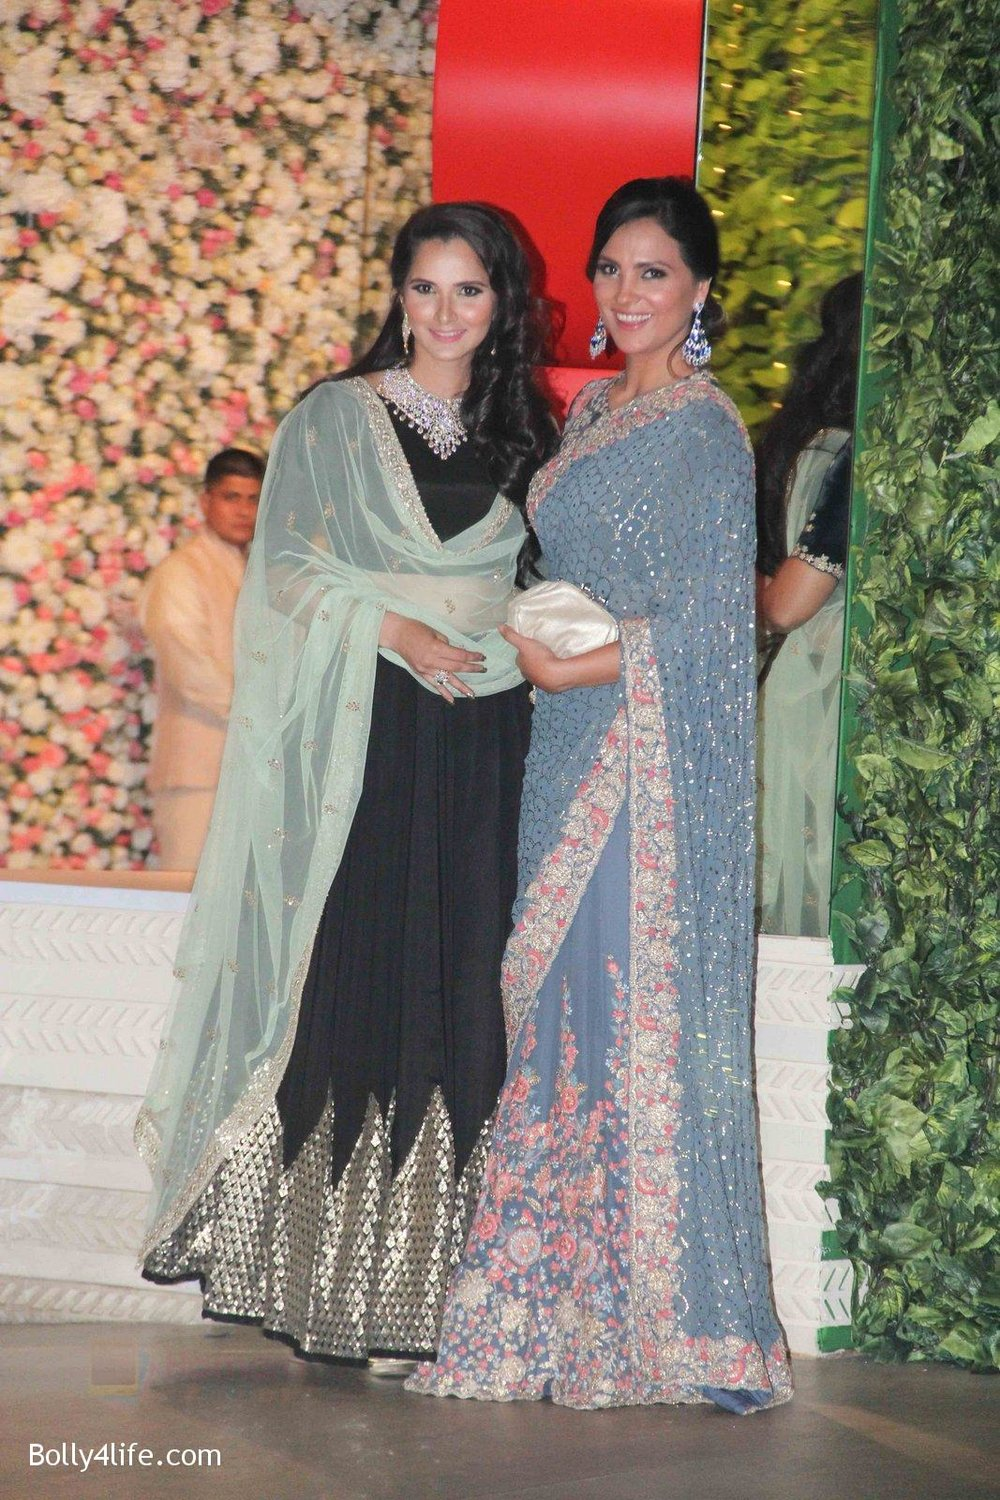 Sania-Mirza-Lara-Dutta-at-the-Ambanis-wedding-party-of-their-niece-Isheta-Salgaoncar-1.jpg